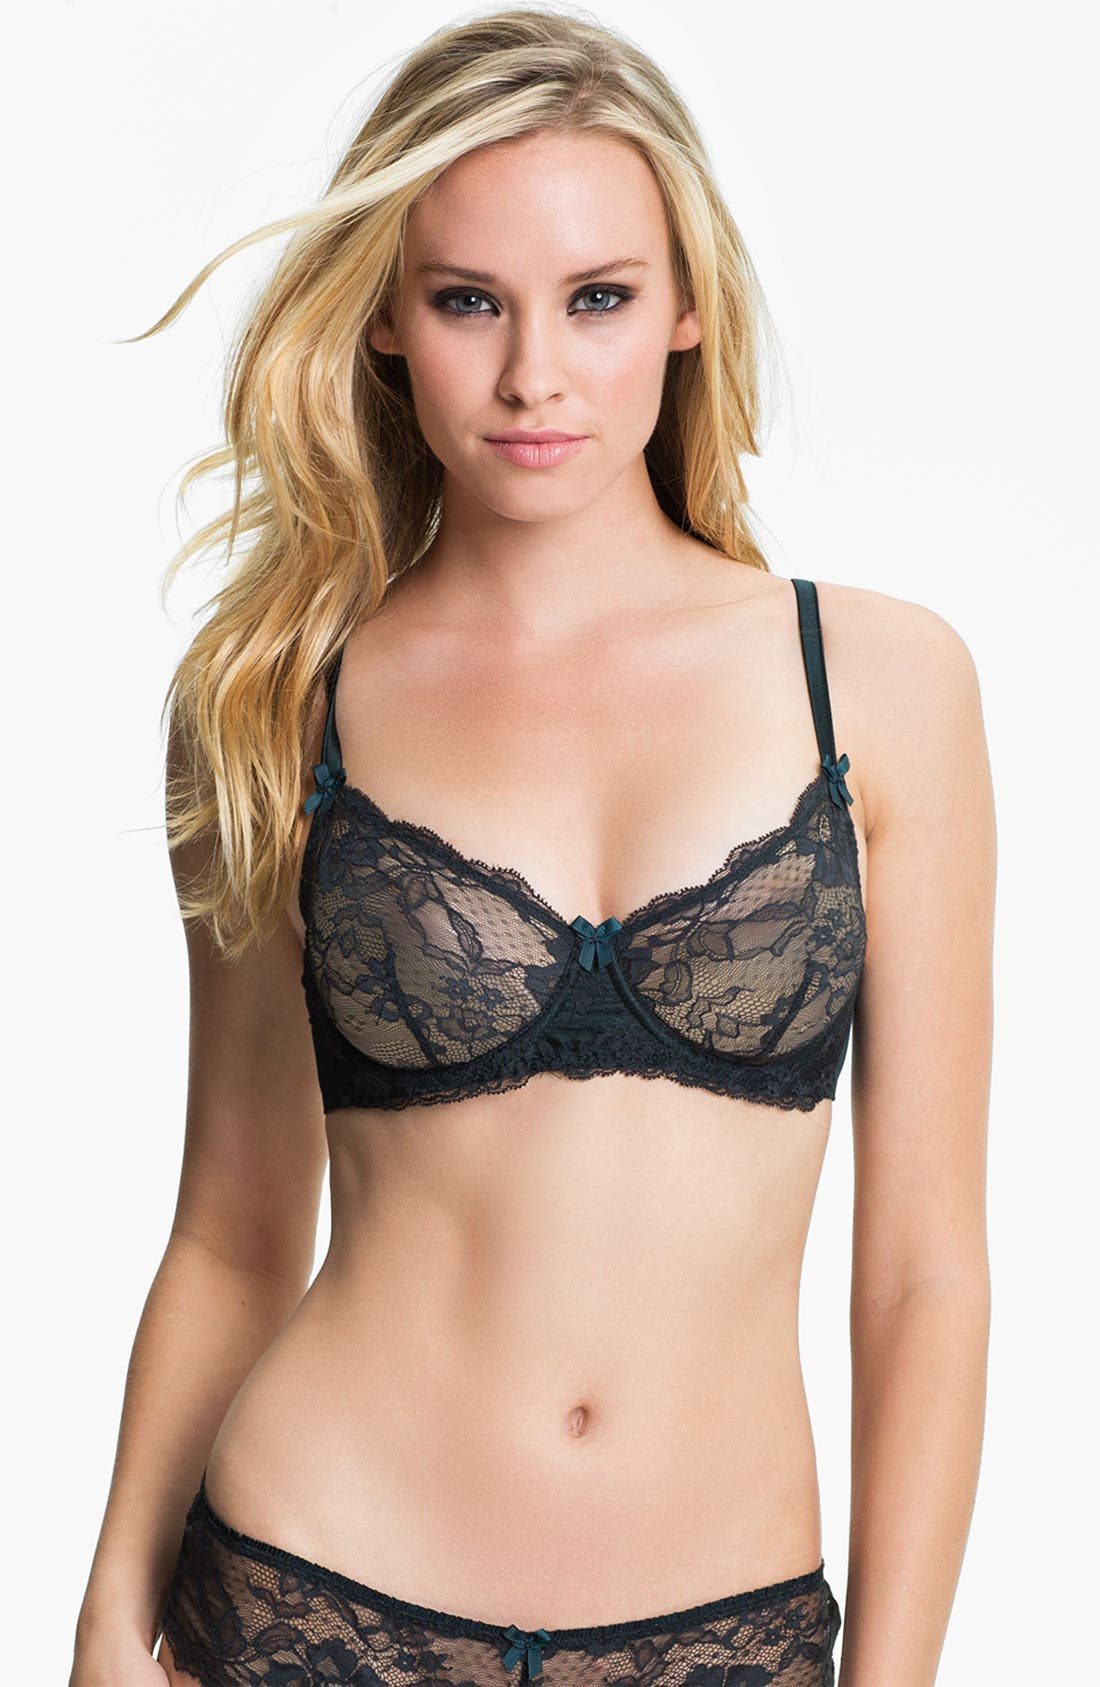 Alternate Image 1 Selected - Mimi Holliday 'Arielle' Underwire Comfort Bra